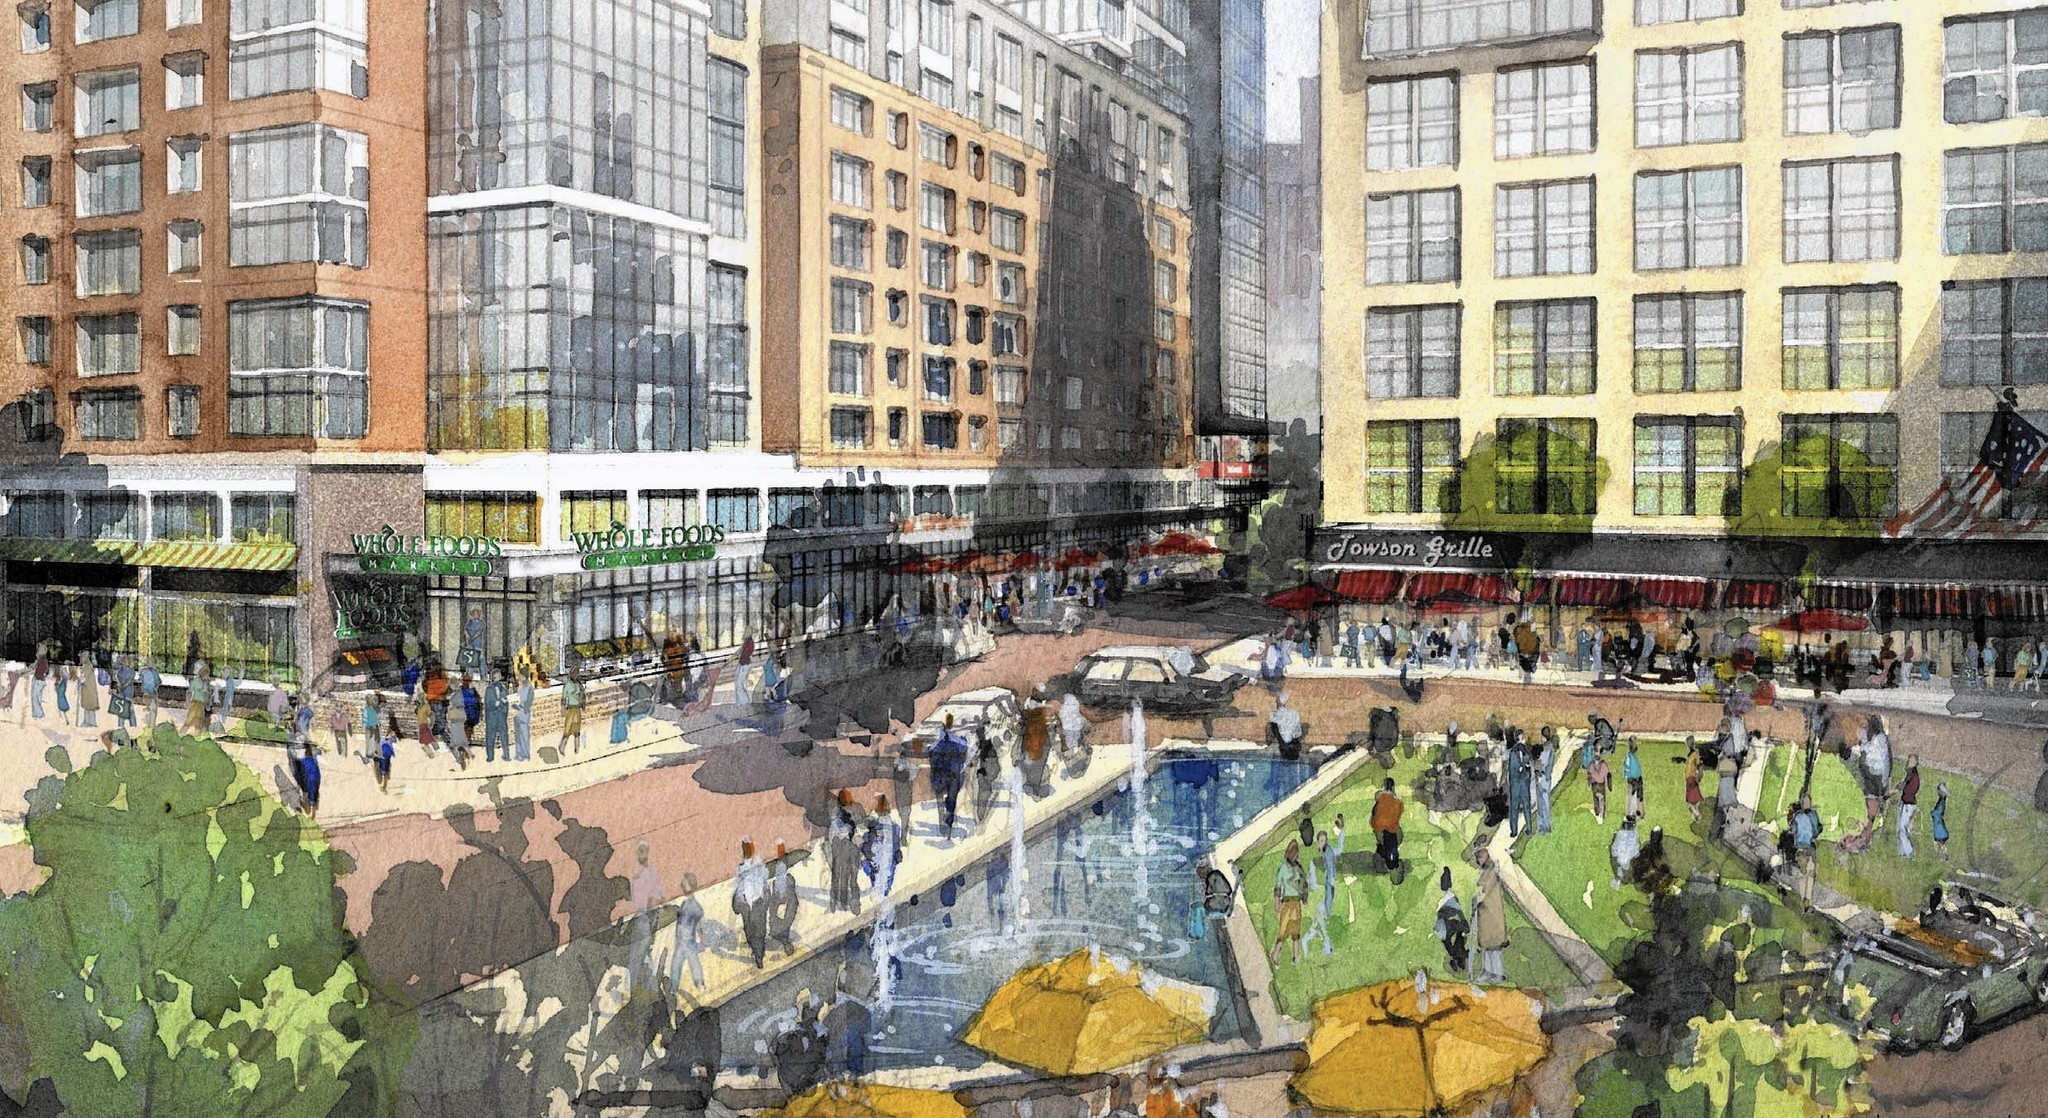 The New Towson Emerging cosmopolitan hub or chaotic patchwork of